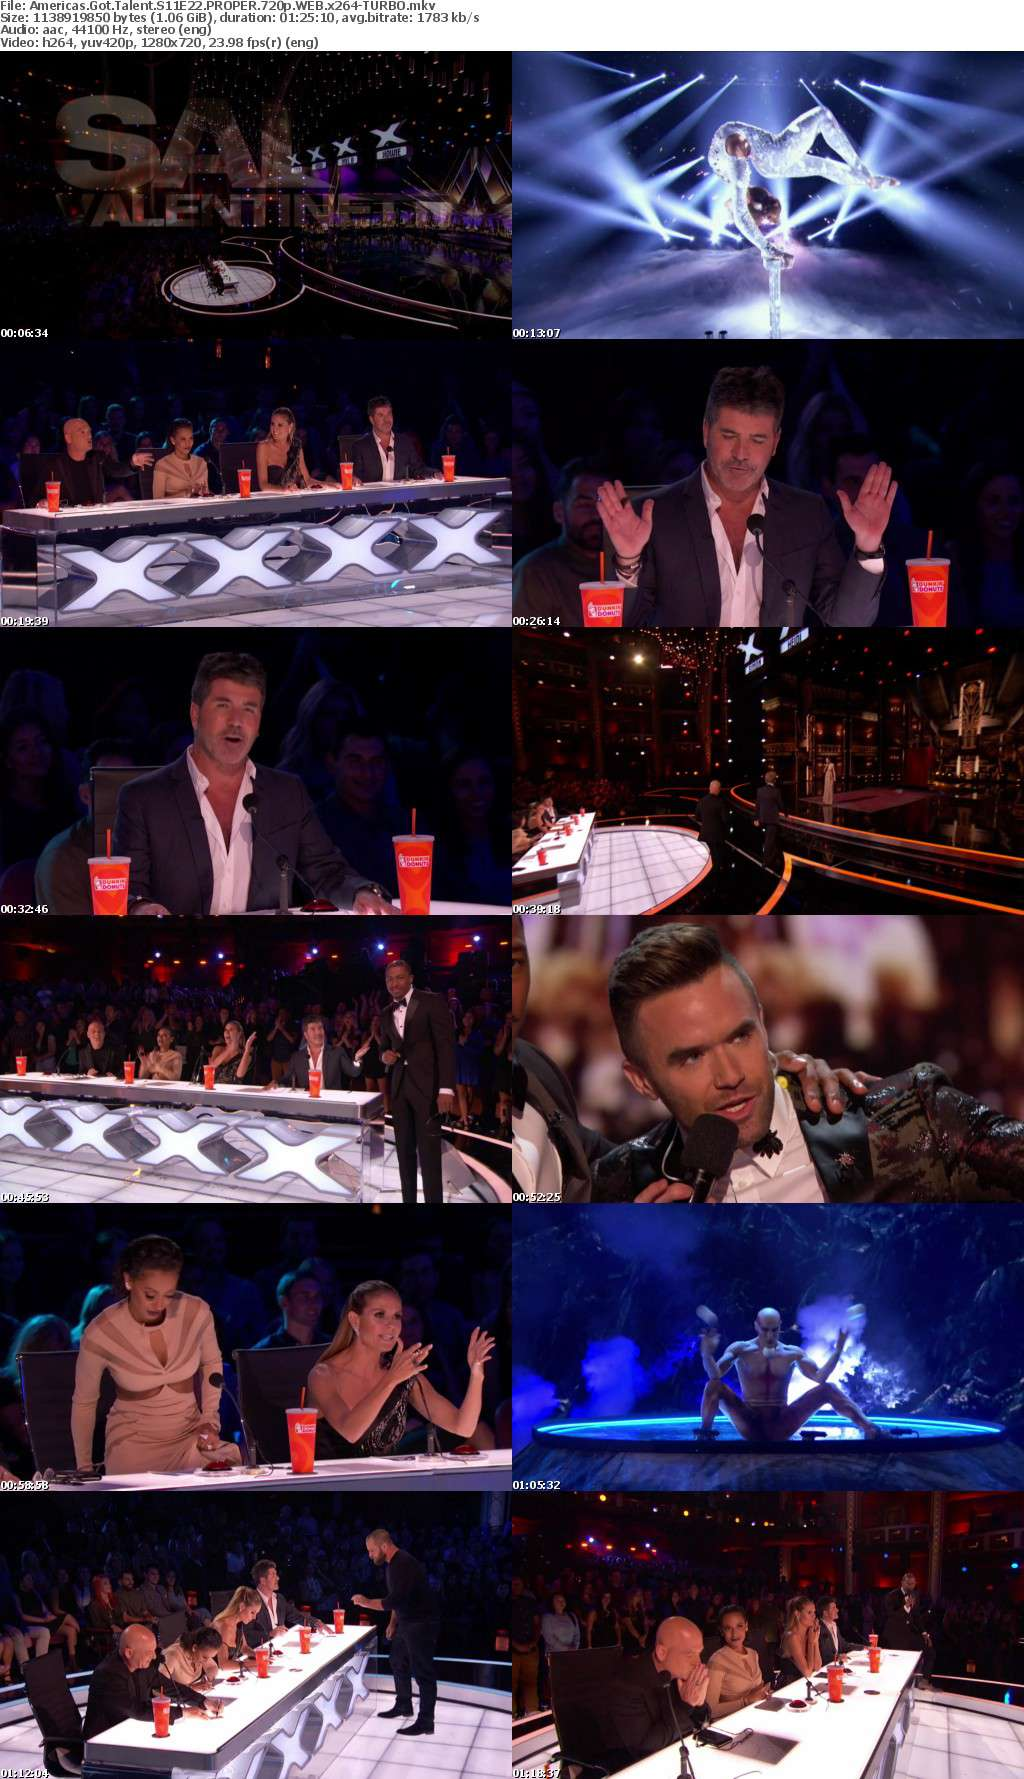 Americas Got Talent S11E22 PROPER 720p WEB x264-TURBO